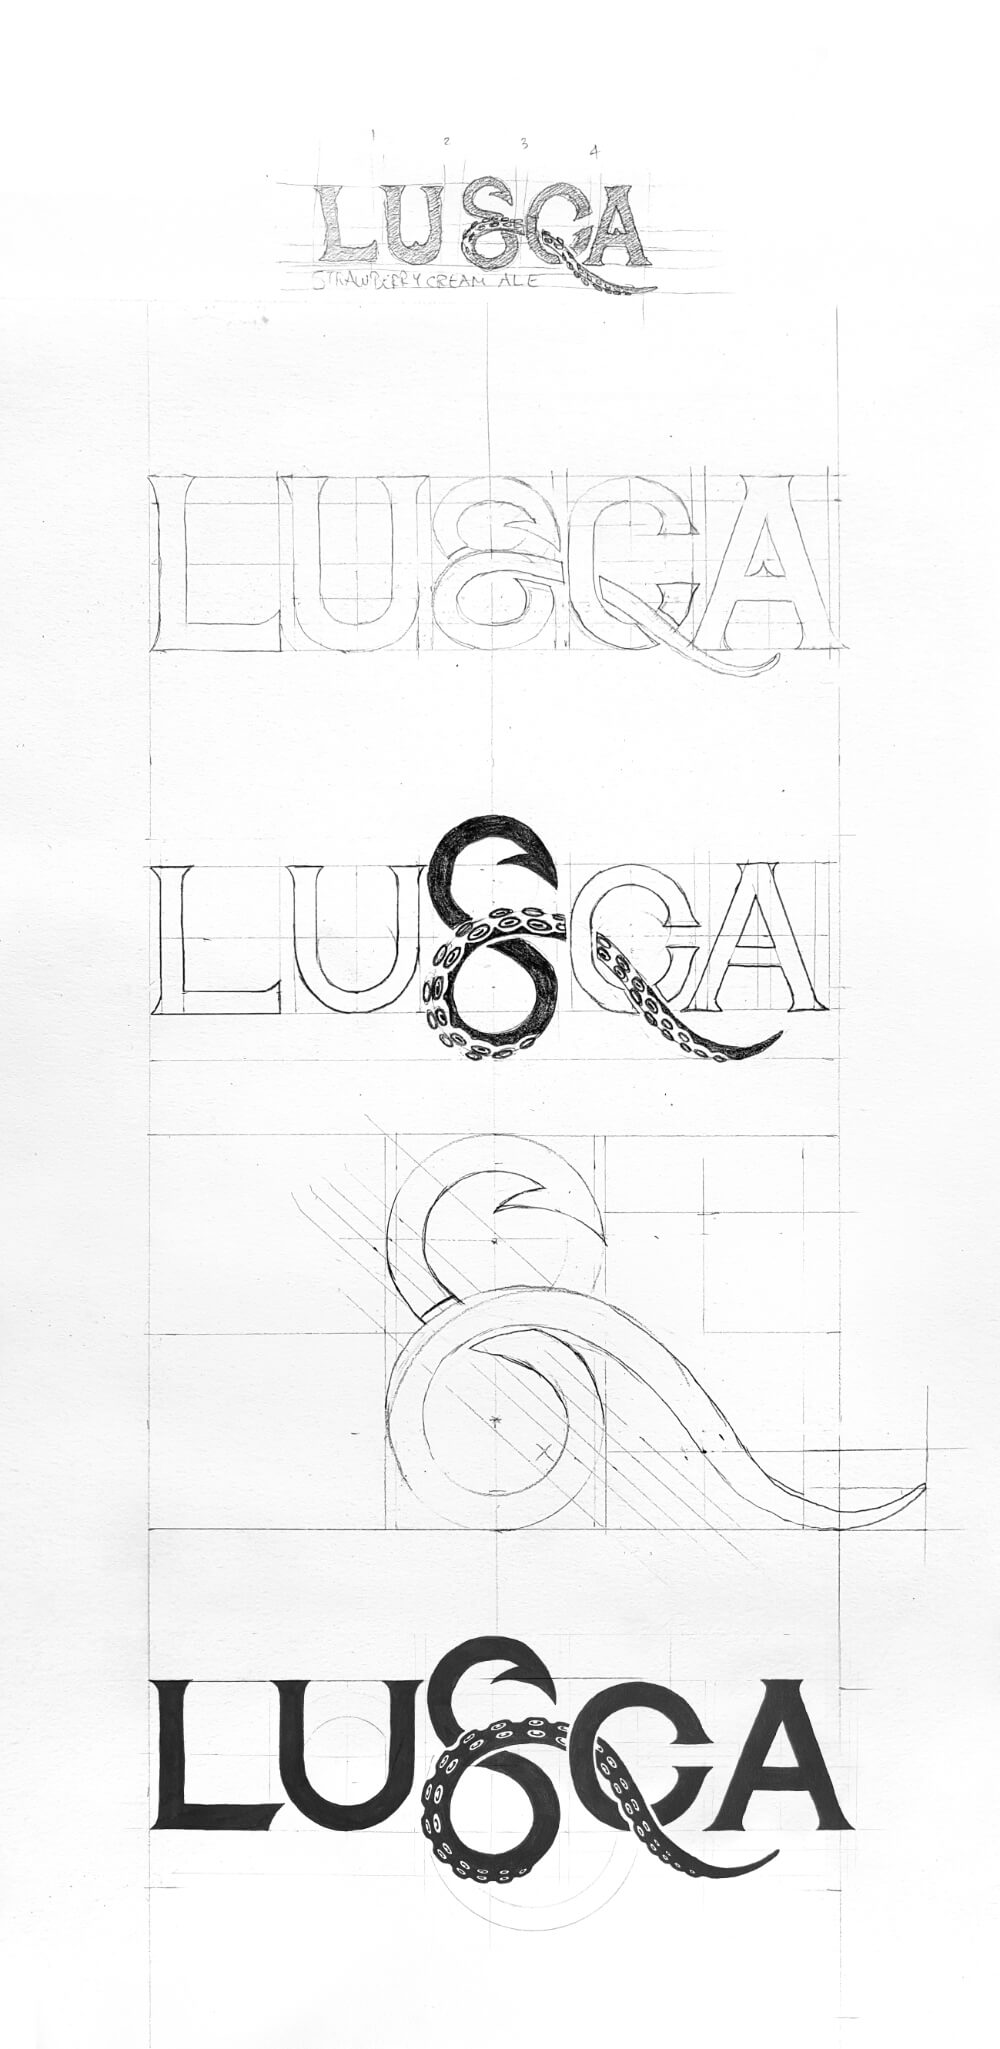 Logotype iterations